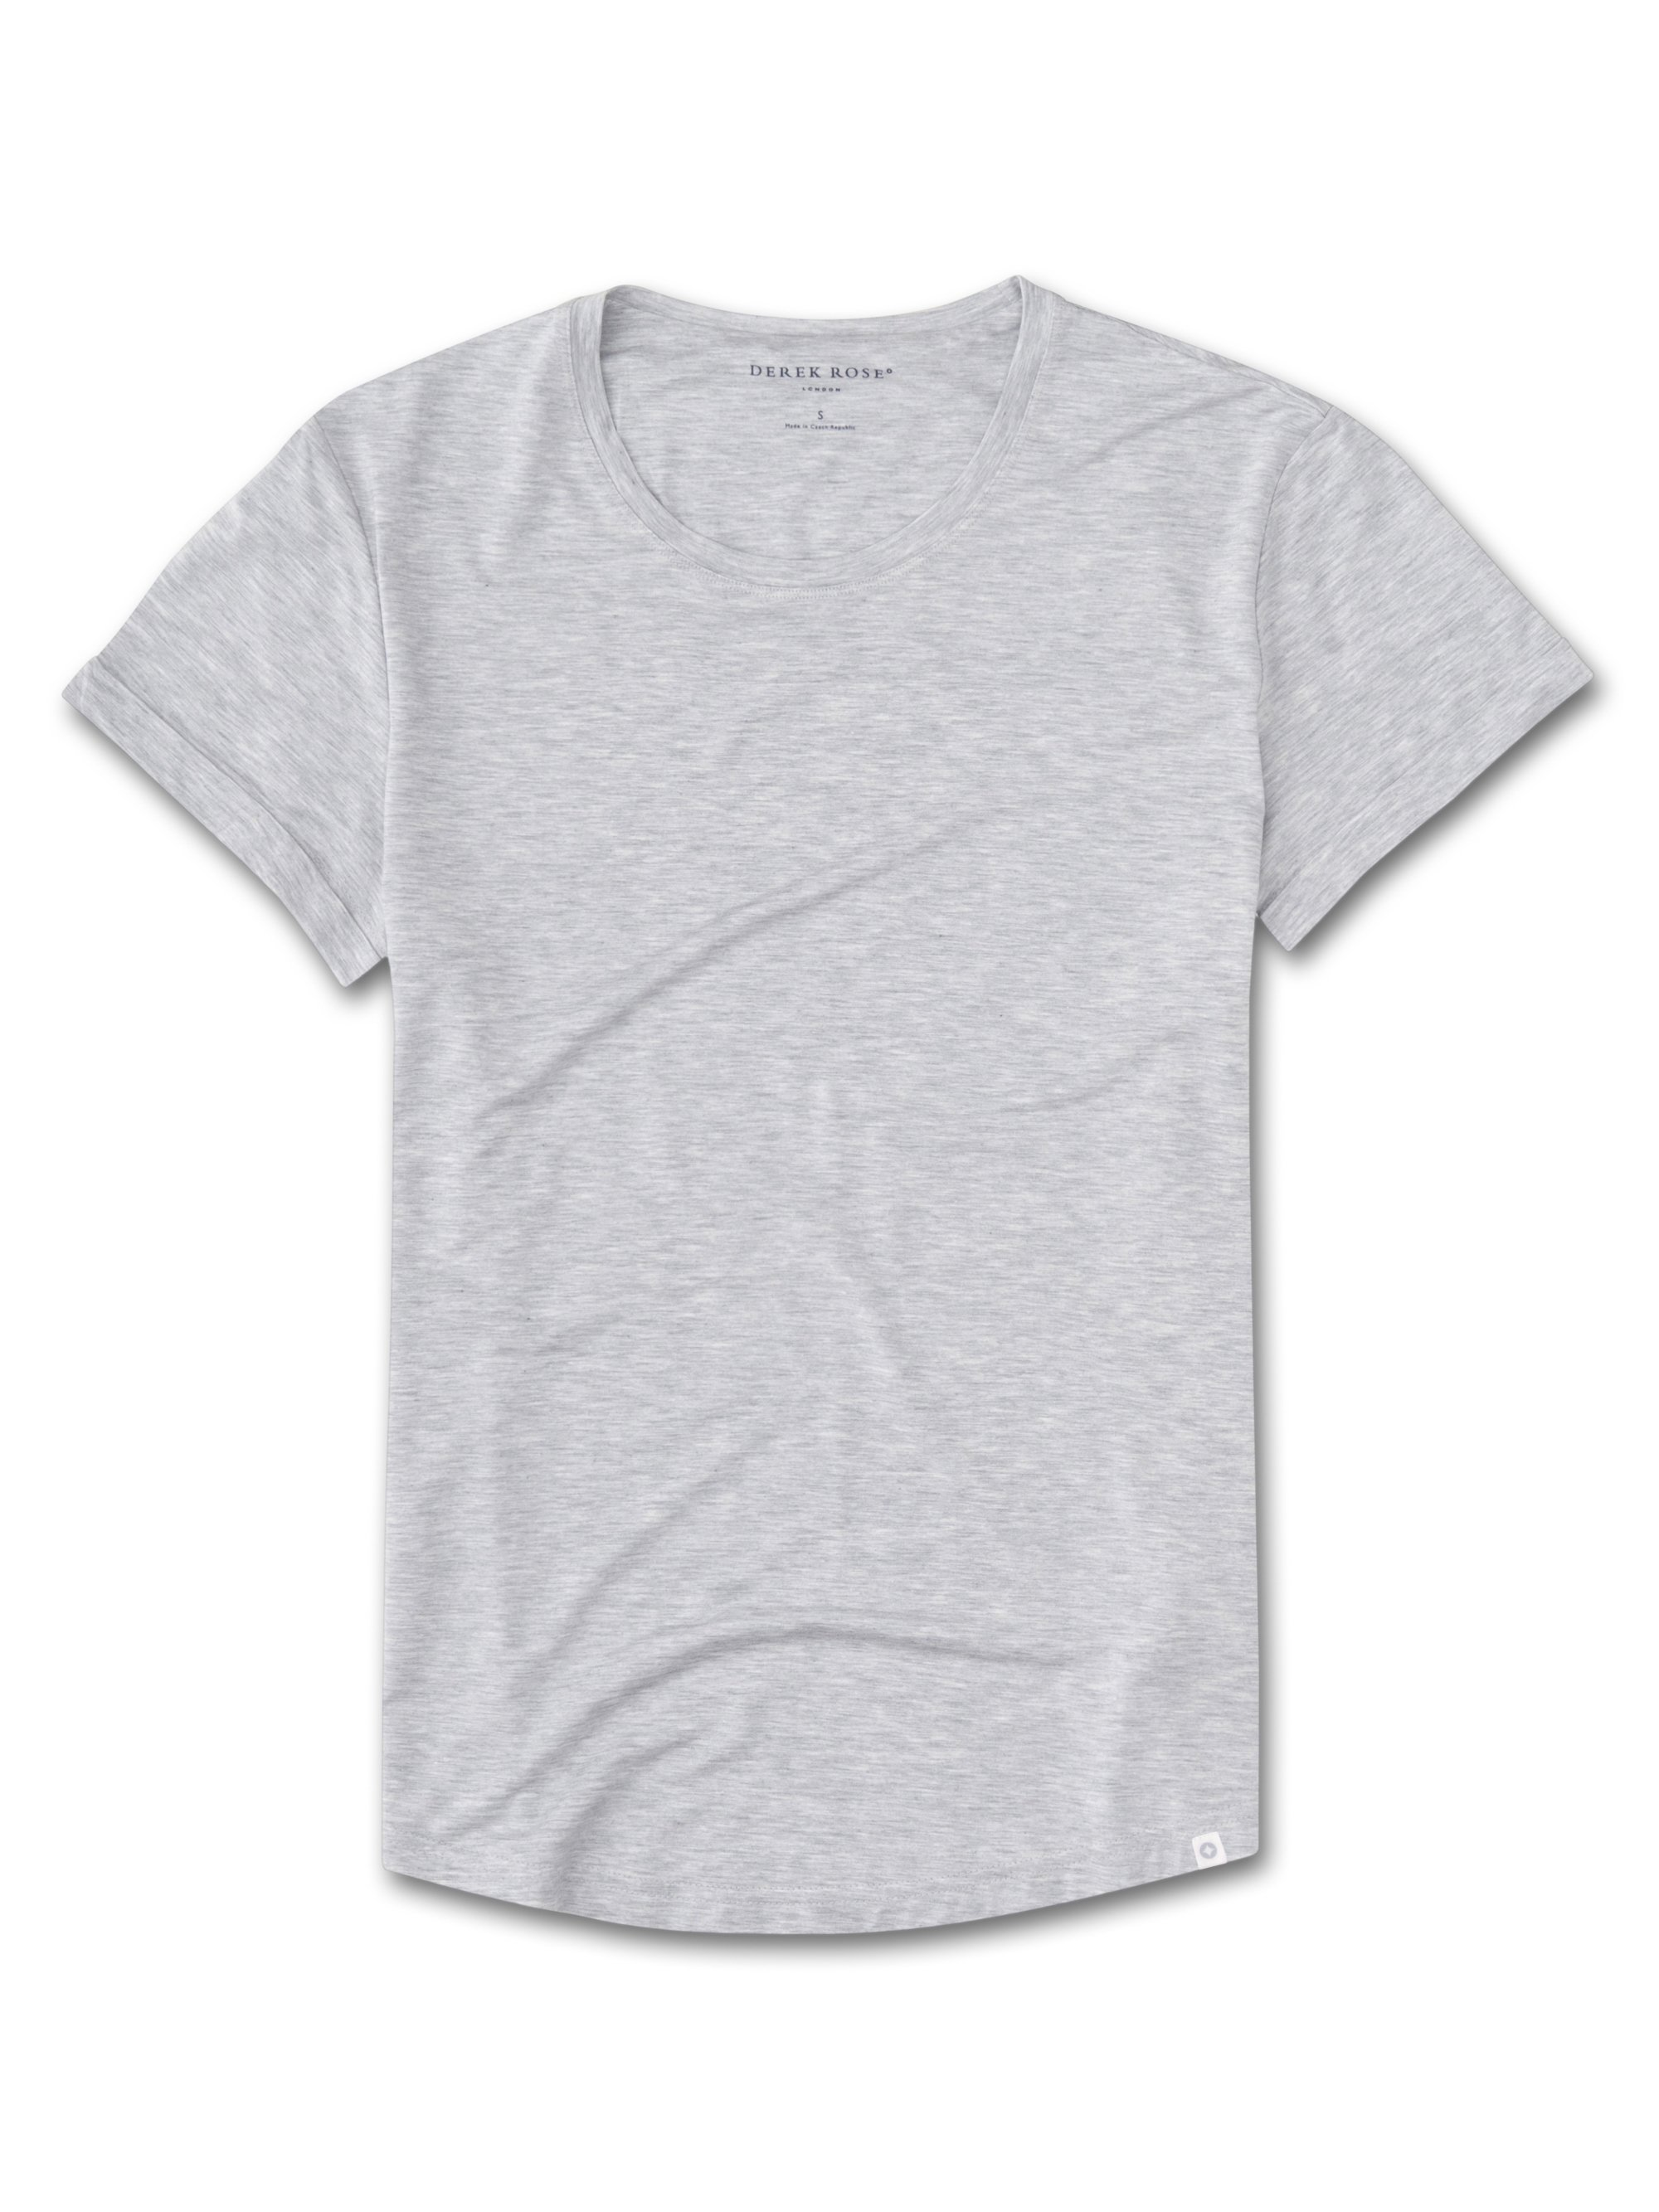 Women's Leisure T-Shirt Ethan Micro Modal Stretch Stretch Silver